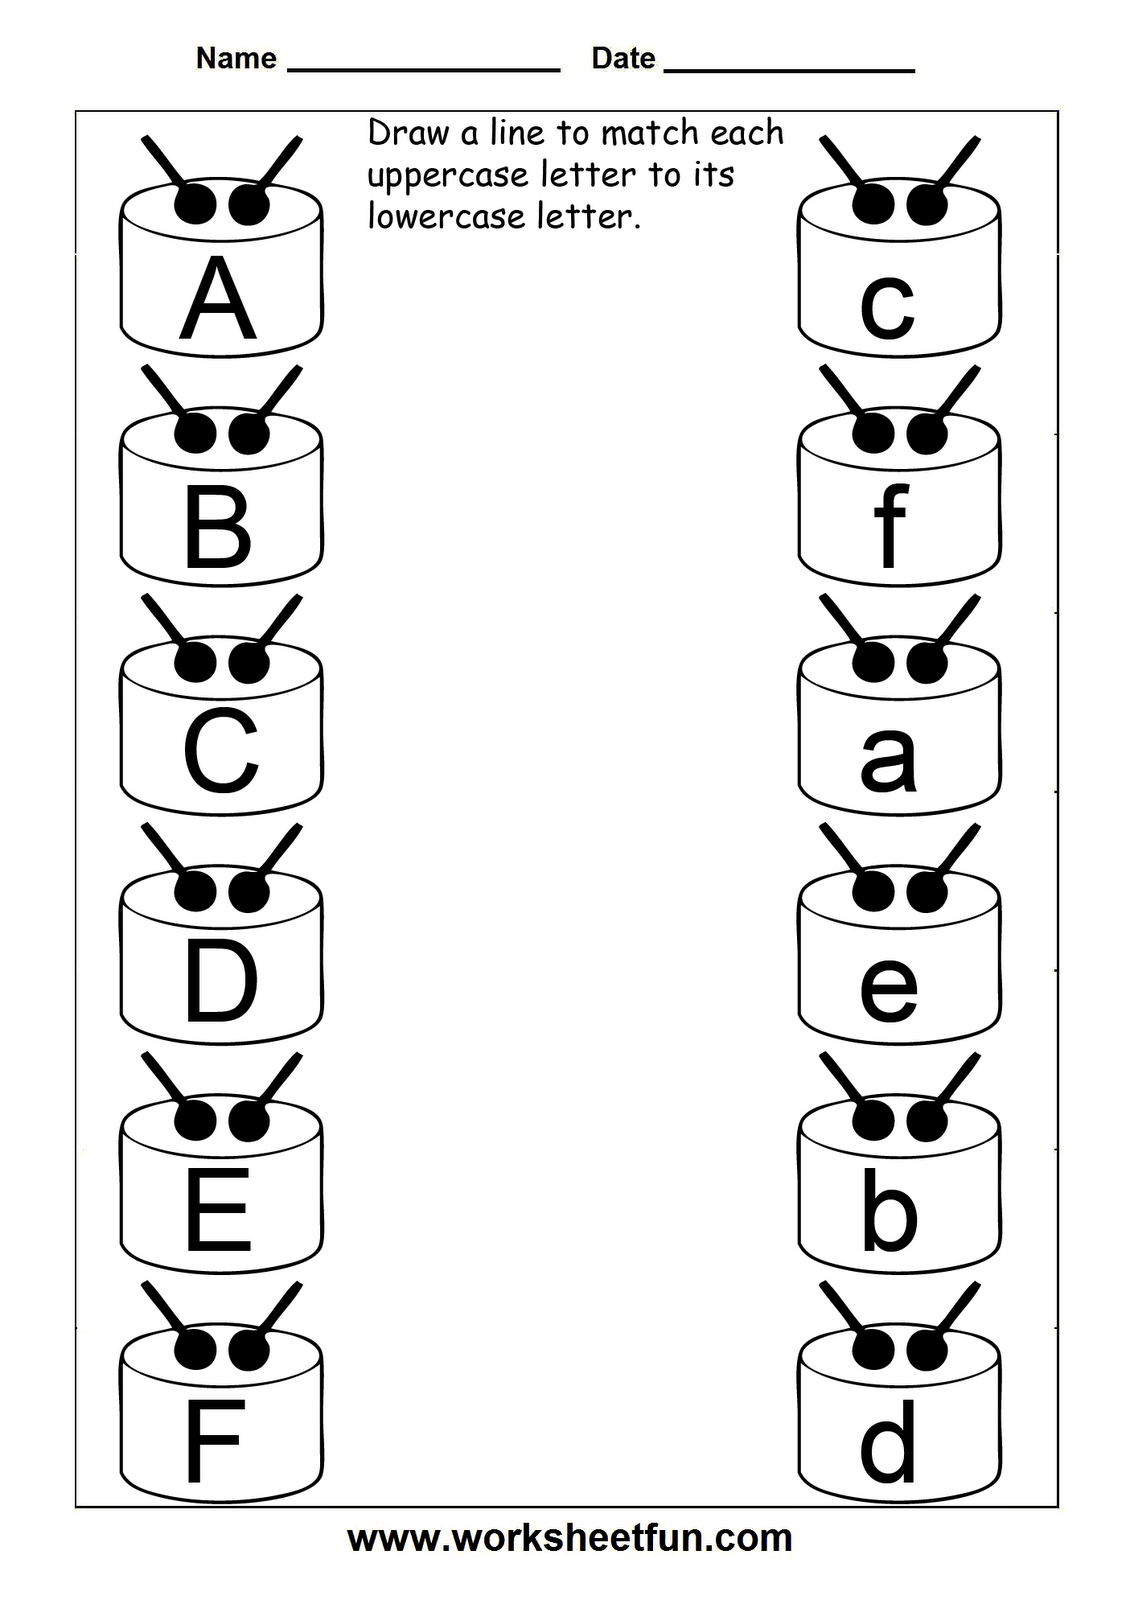 photo regarding Free Printable Uppercase and Lowercase Letters Worksheets called 8 Least complicated Photos Of Uppercase And Lowercase Letters Printable